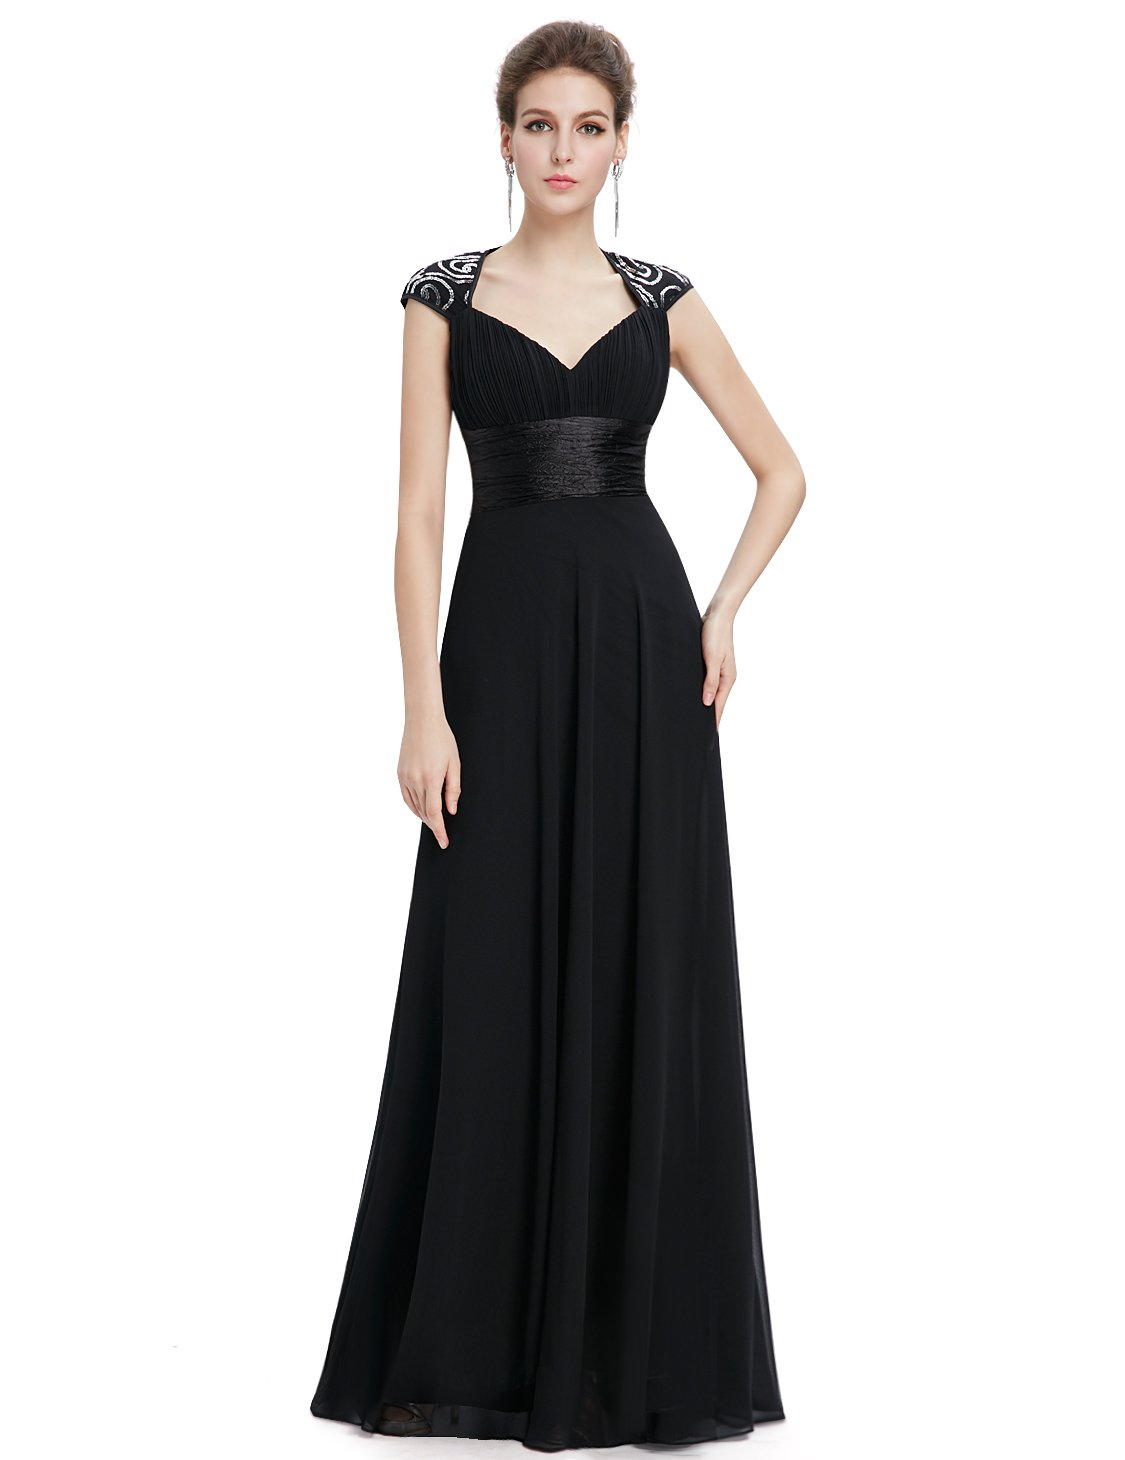 Ever-Pretty Womens Sleeveless V Neck Open Back Long Evening Gown 14 US Black